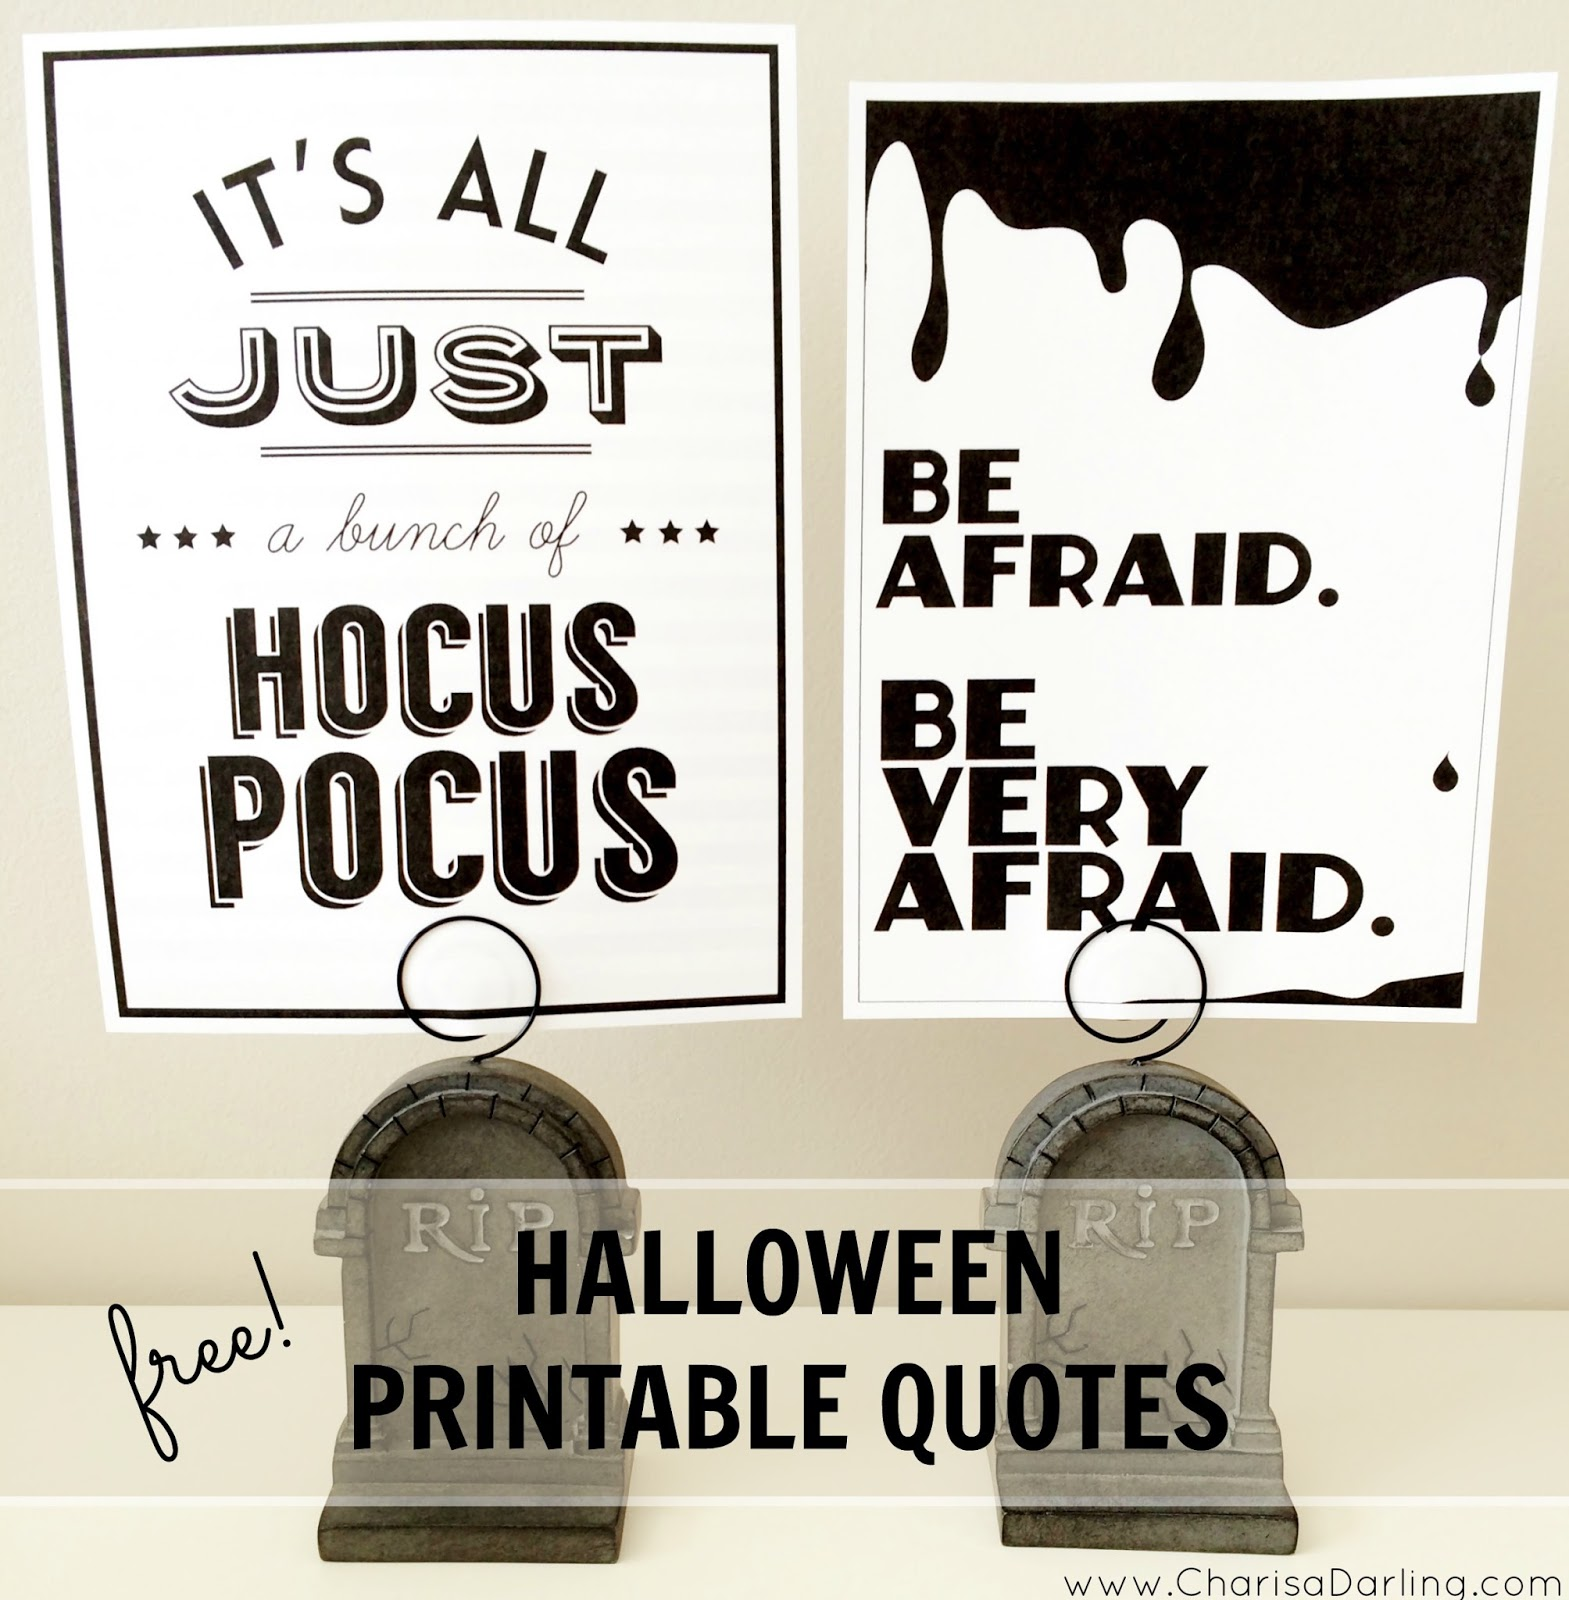 free halloween printable quotes | charisa darling